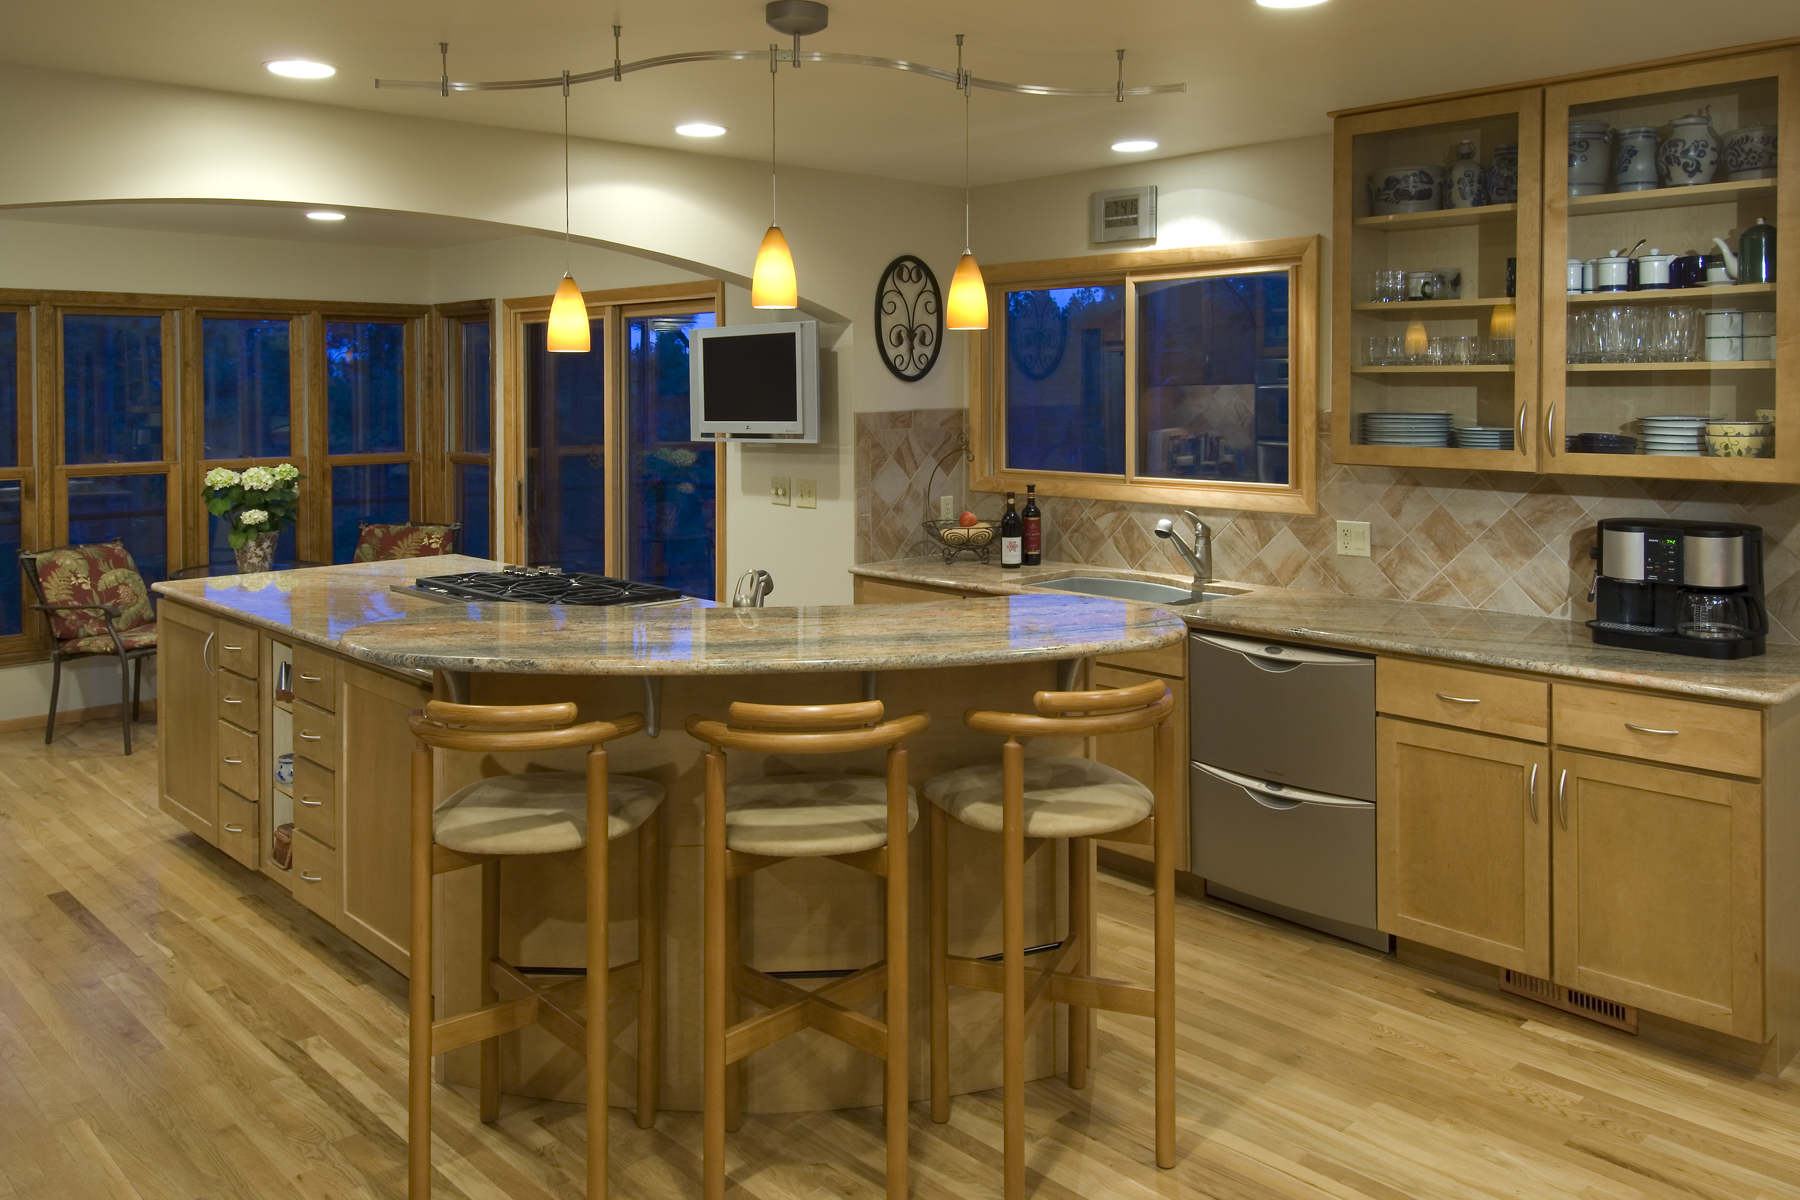 Kitchen Remodeling Colorado Springs Collection Enchanting Colorado Springs Kitchen Remodel Ideas  Kitchen Renovation Design Decoration